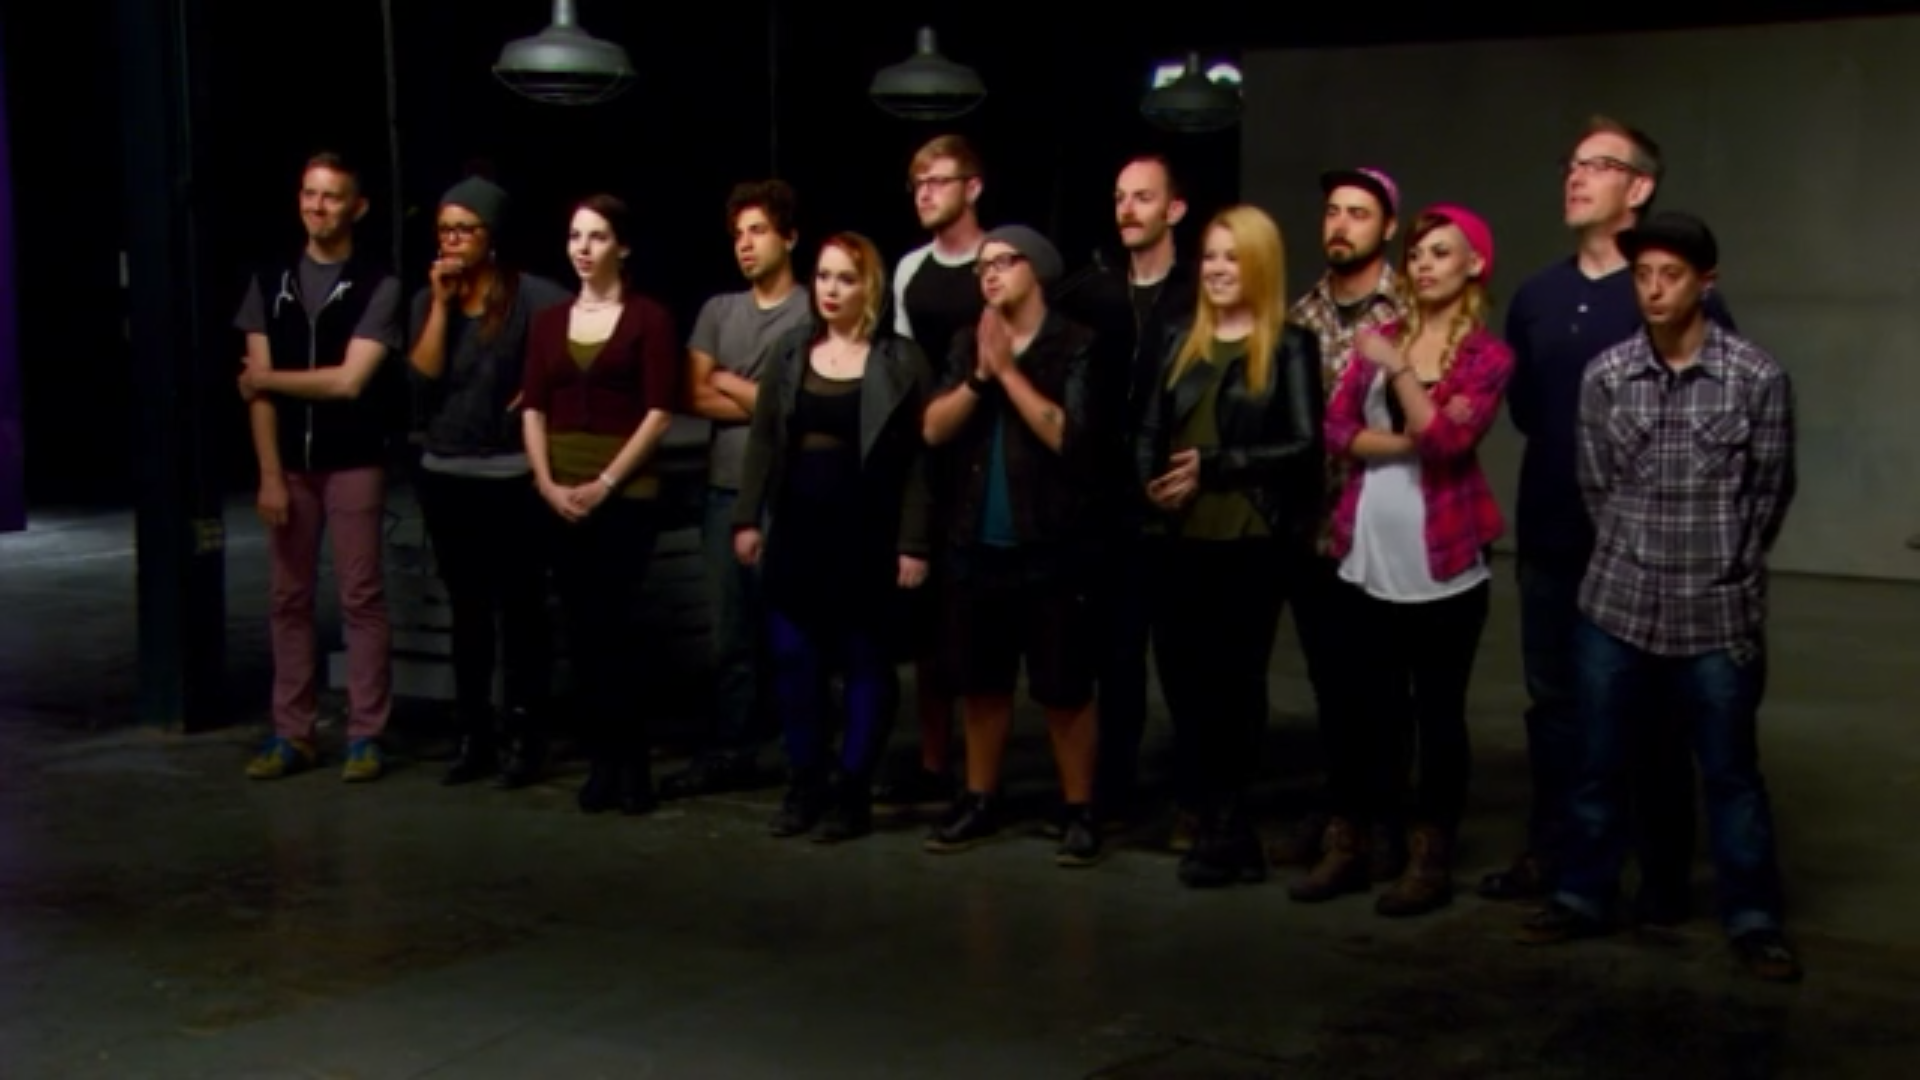 Final 13 Face Off contestants